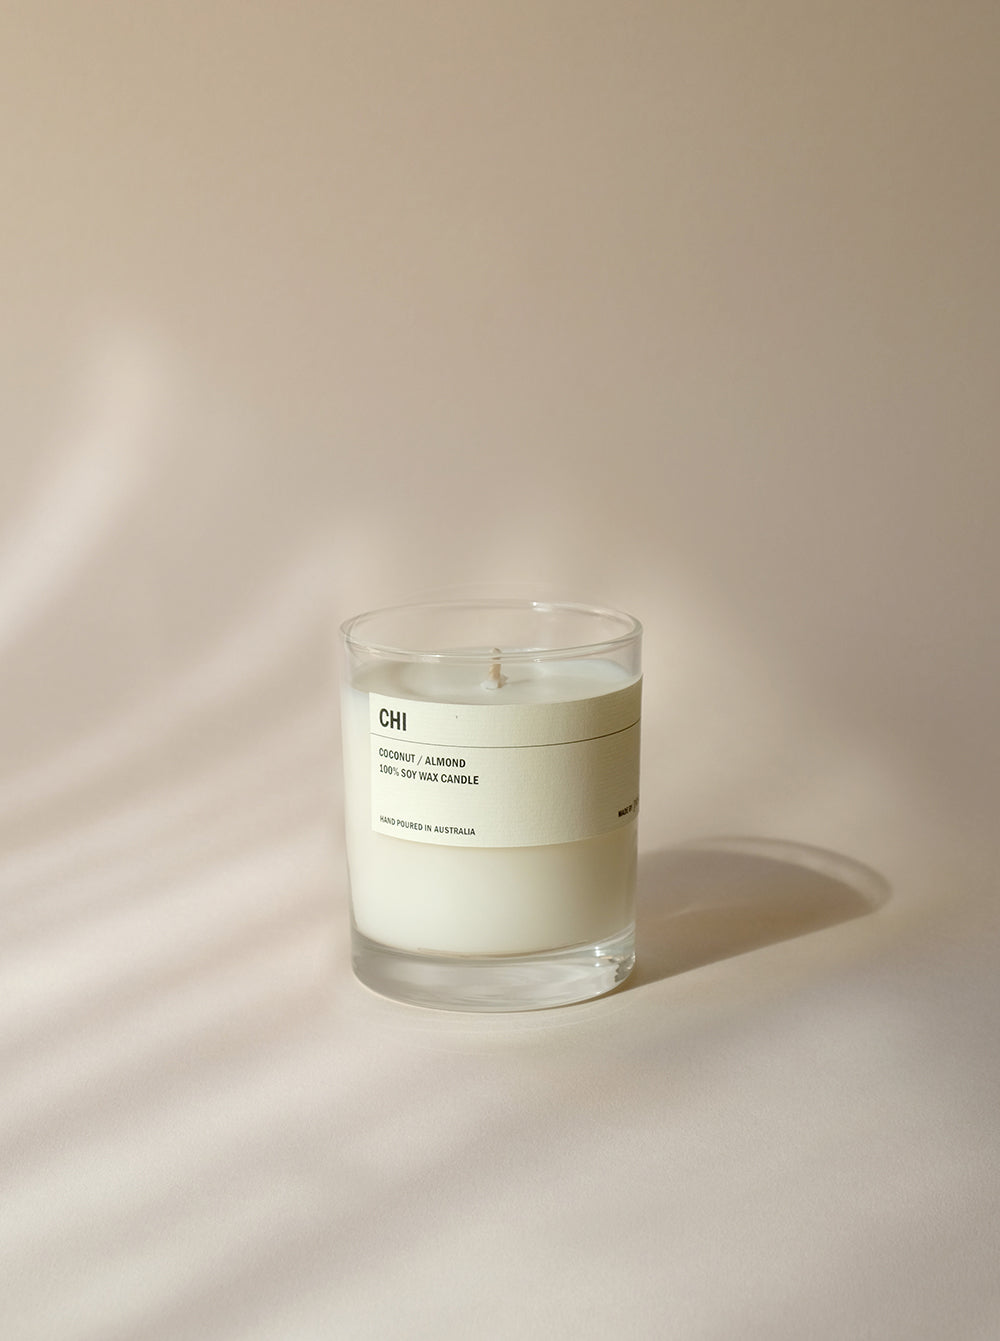 CHI: Clear Tumbler Soy Candle - Coconut - Almond